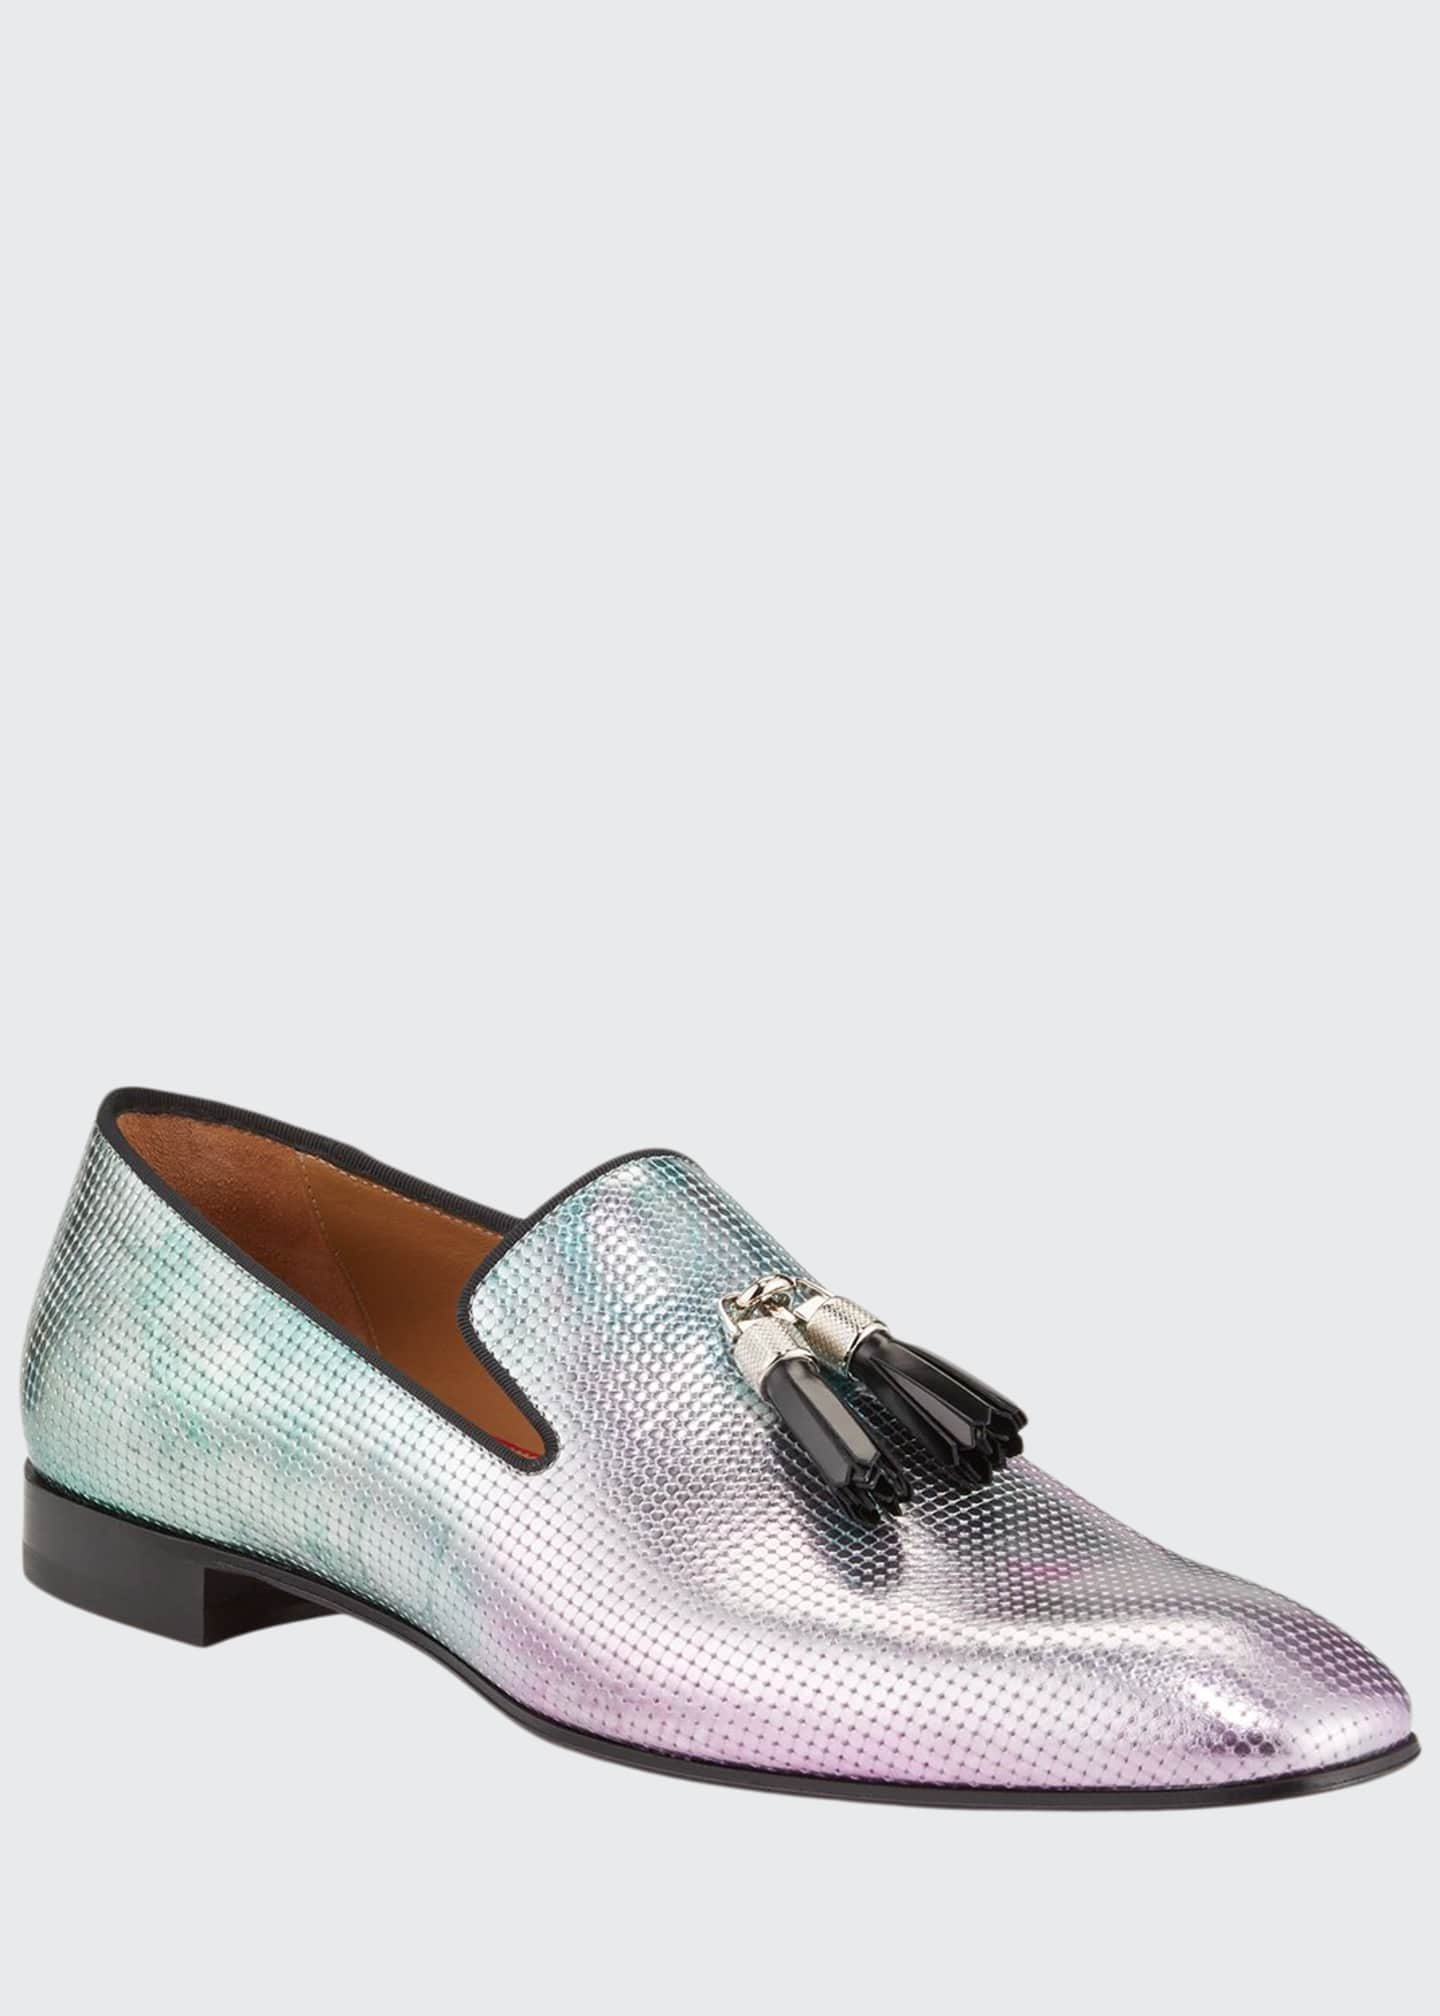 Christian Louboutin Men's Rivalion Iridescent Red Sole Loafers